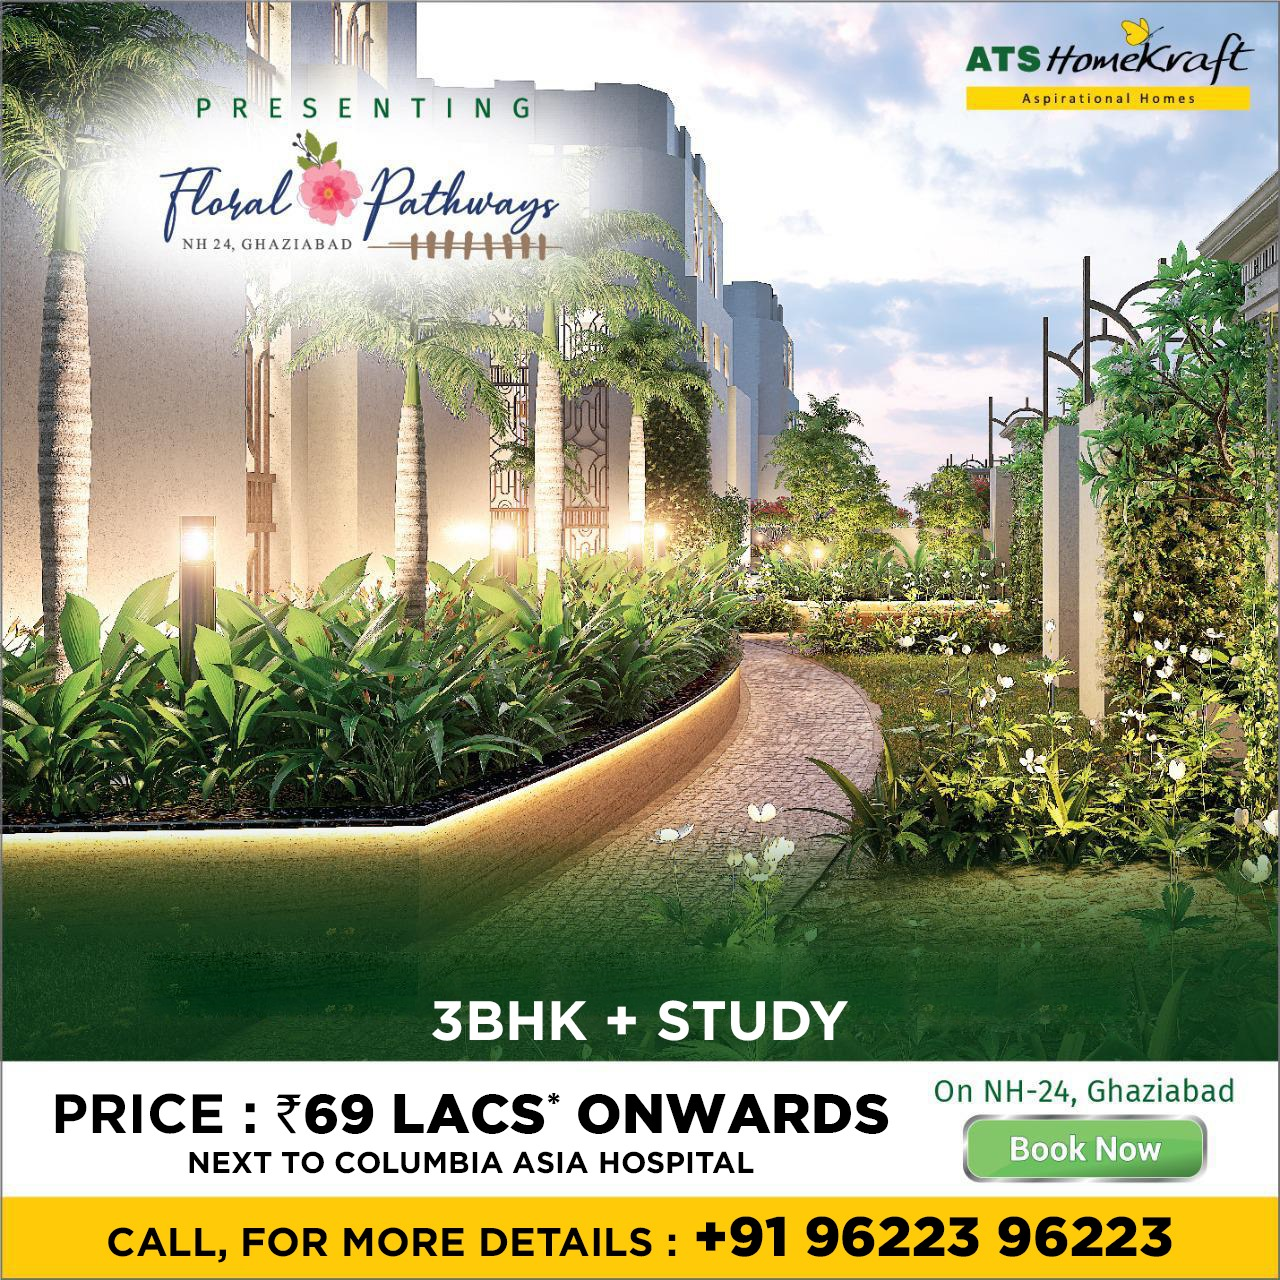 Ats Floral Pathways Ghaziabad